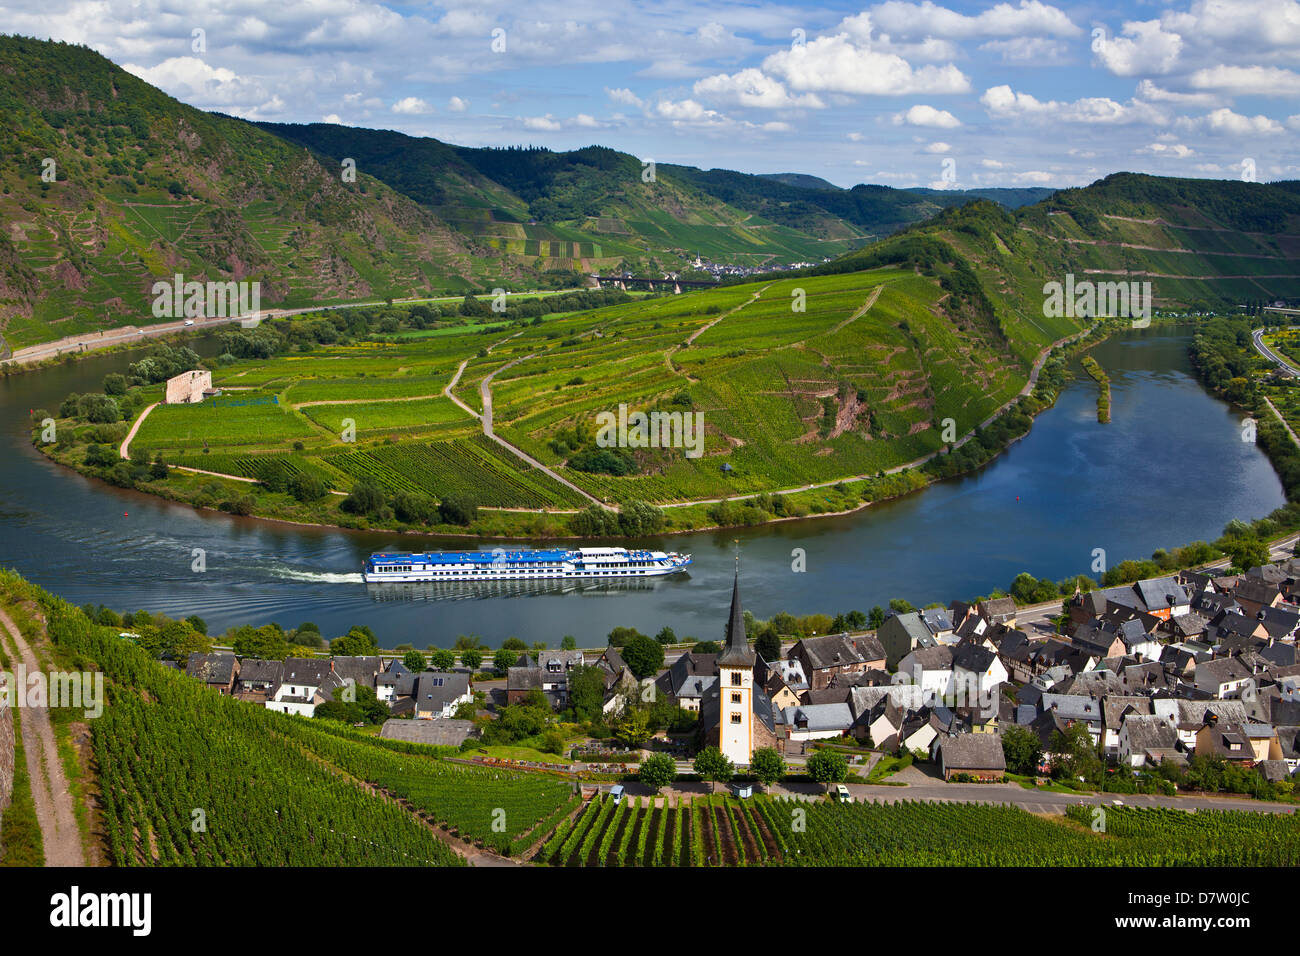 The famous bow near Bremm on the River Moselle, Rhineland-Palatinate, Germany - Stock Image